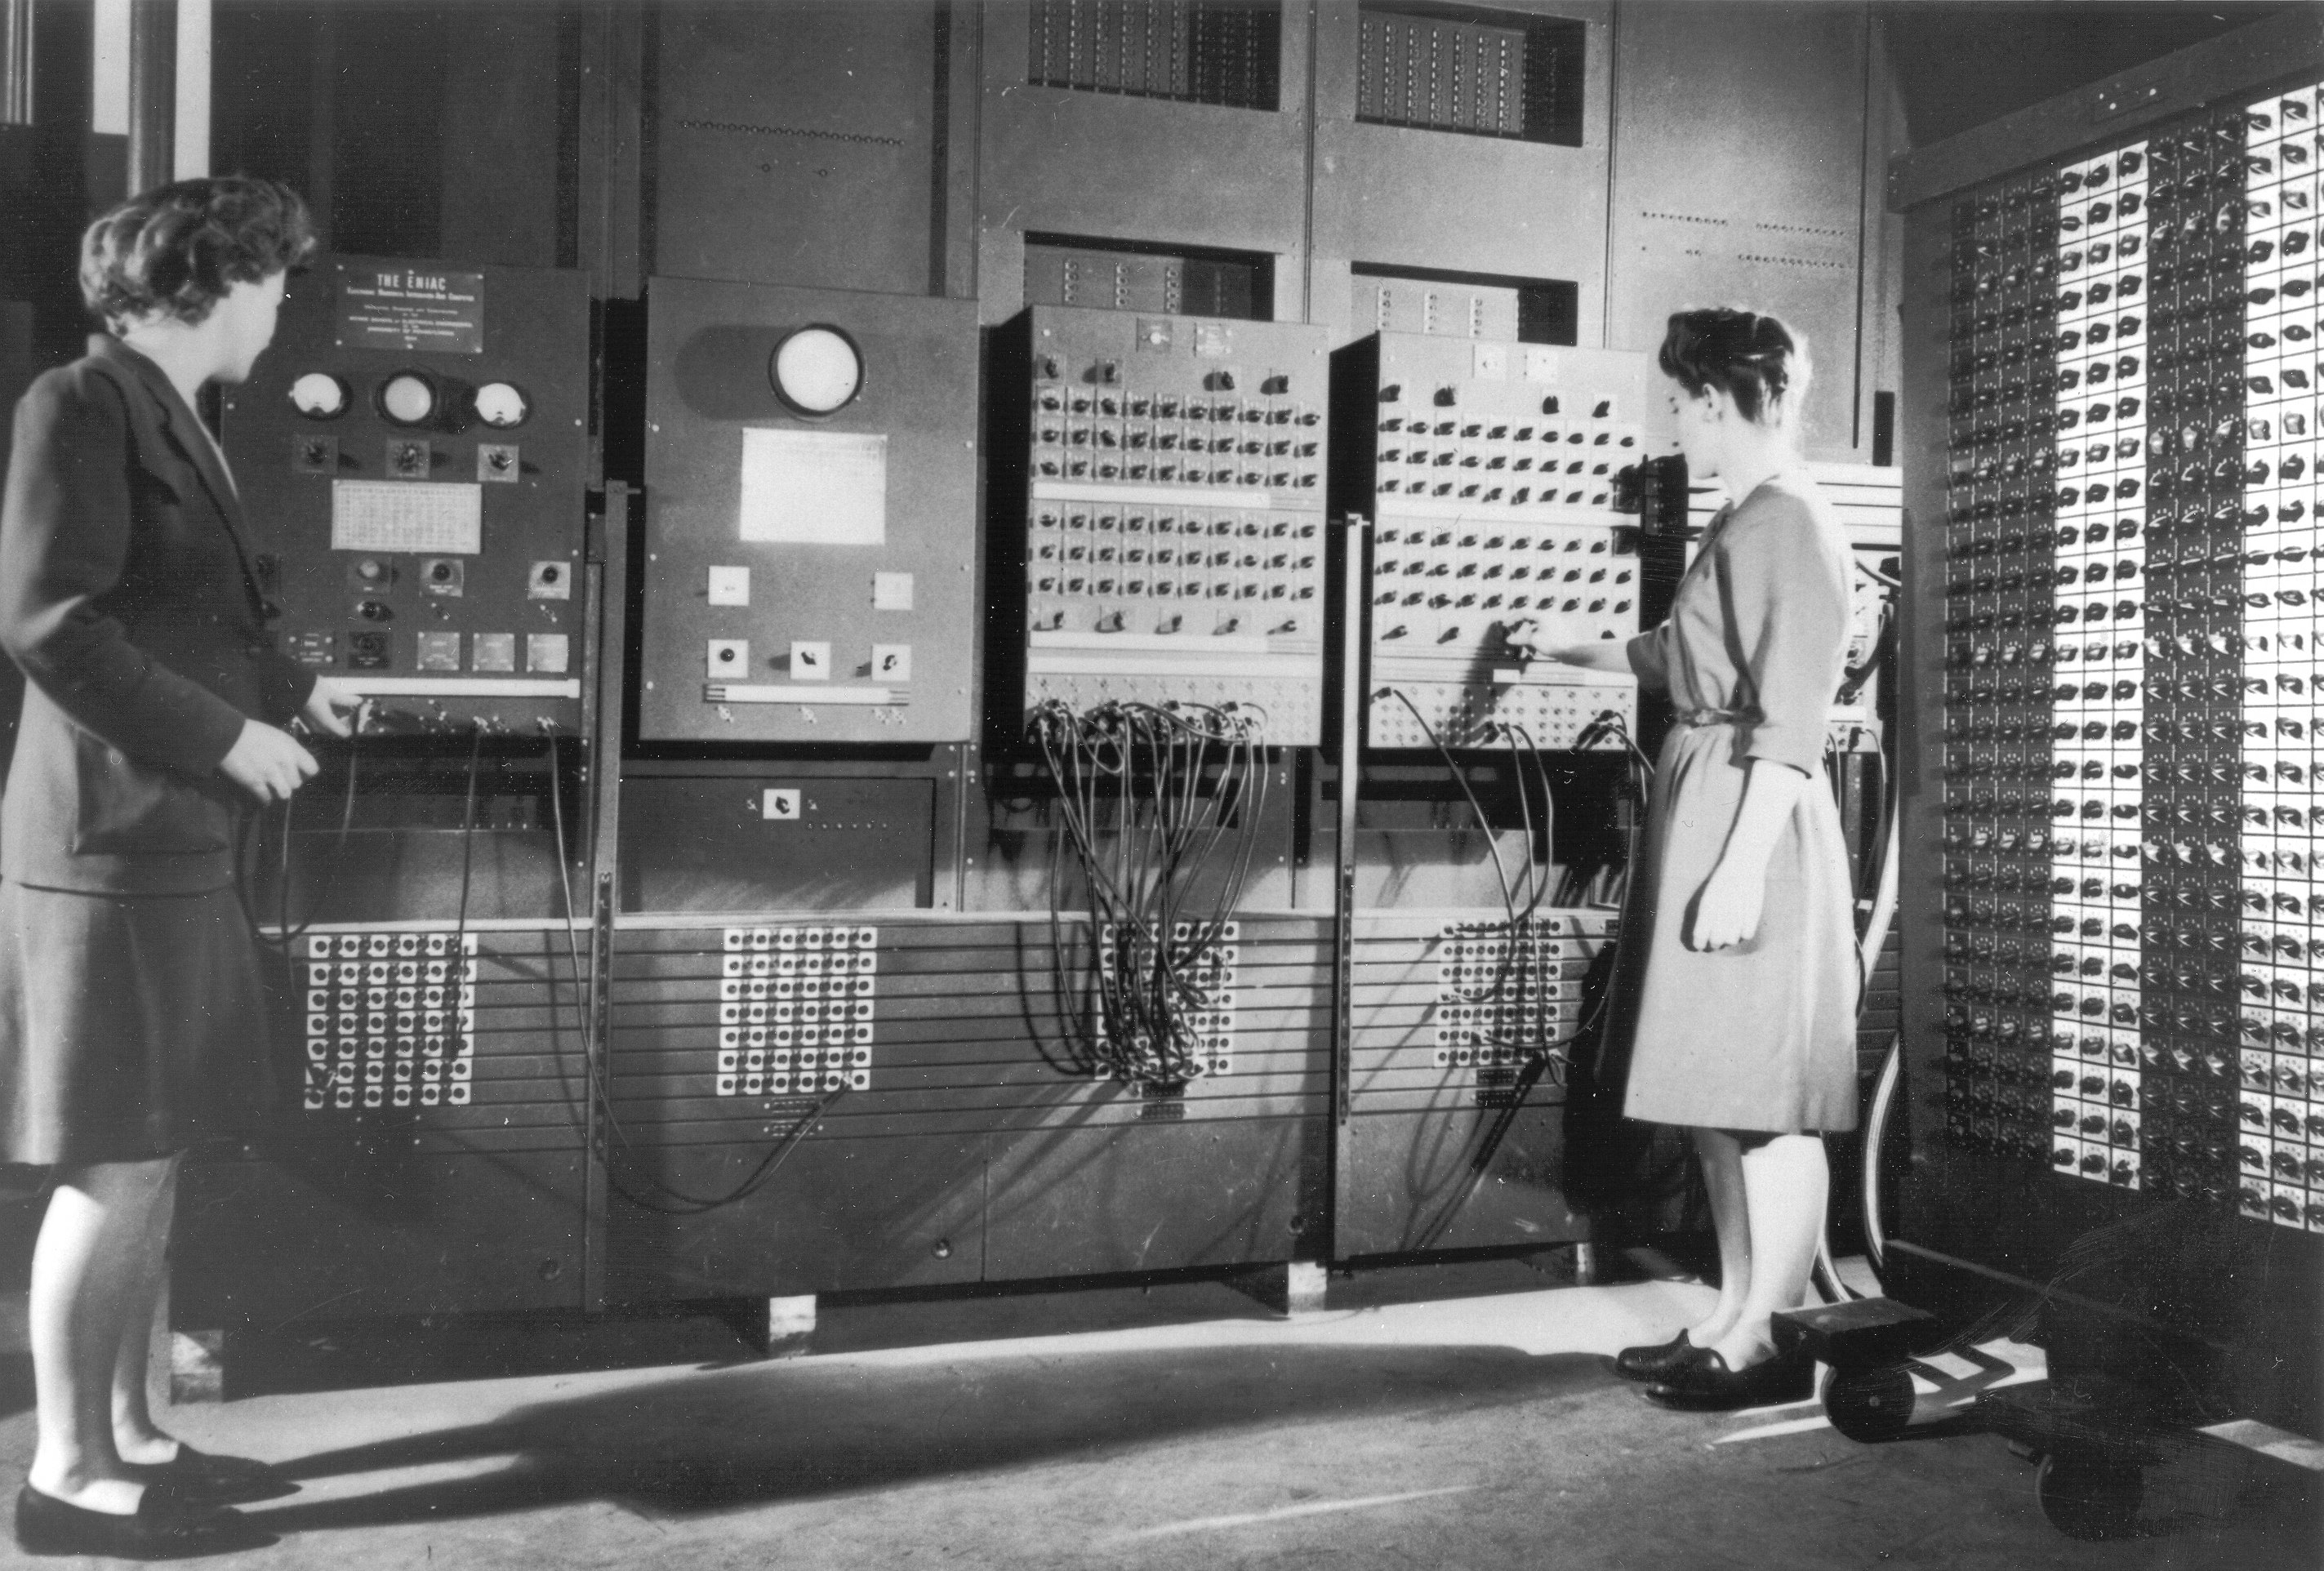 http://upload.wikimedia.org/wikipedia/commons/8/8c/Two_women_operating_ENIAC_(full_resolution).jpg